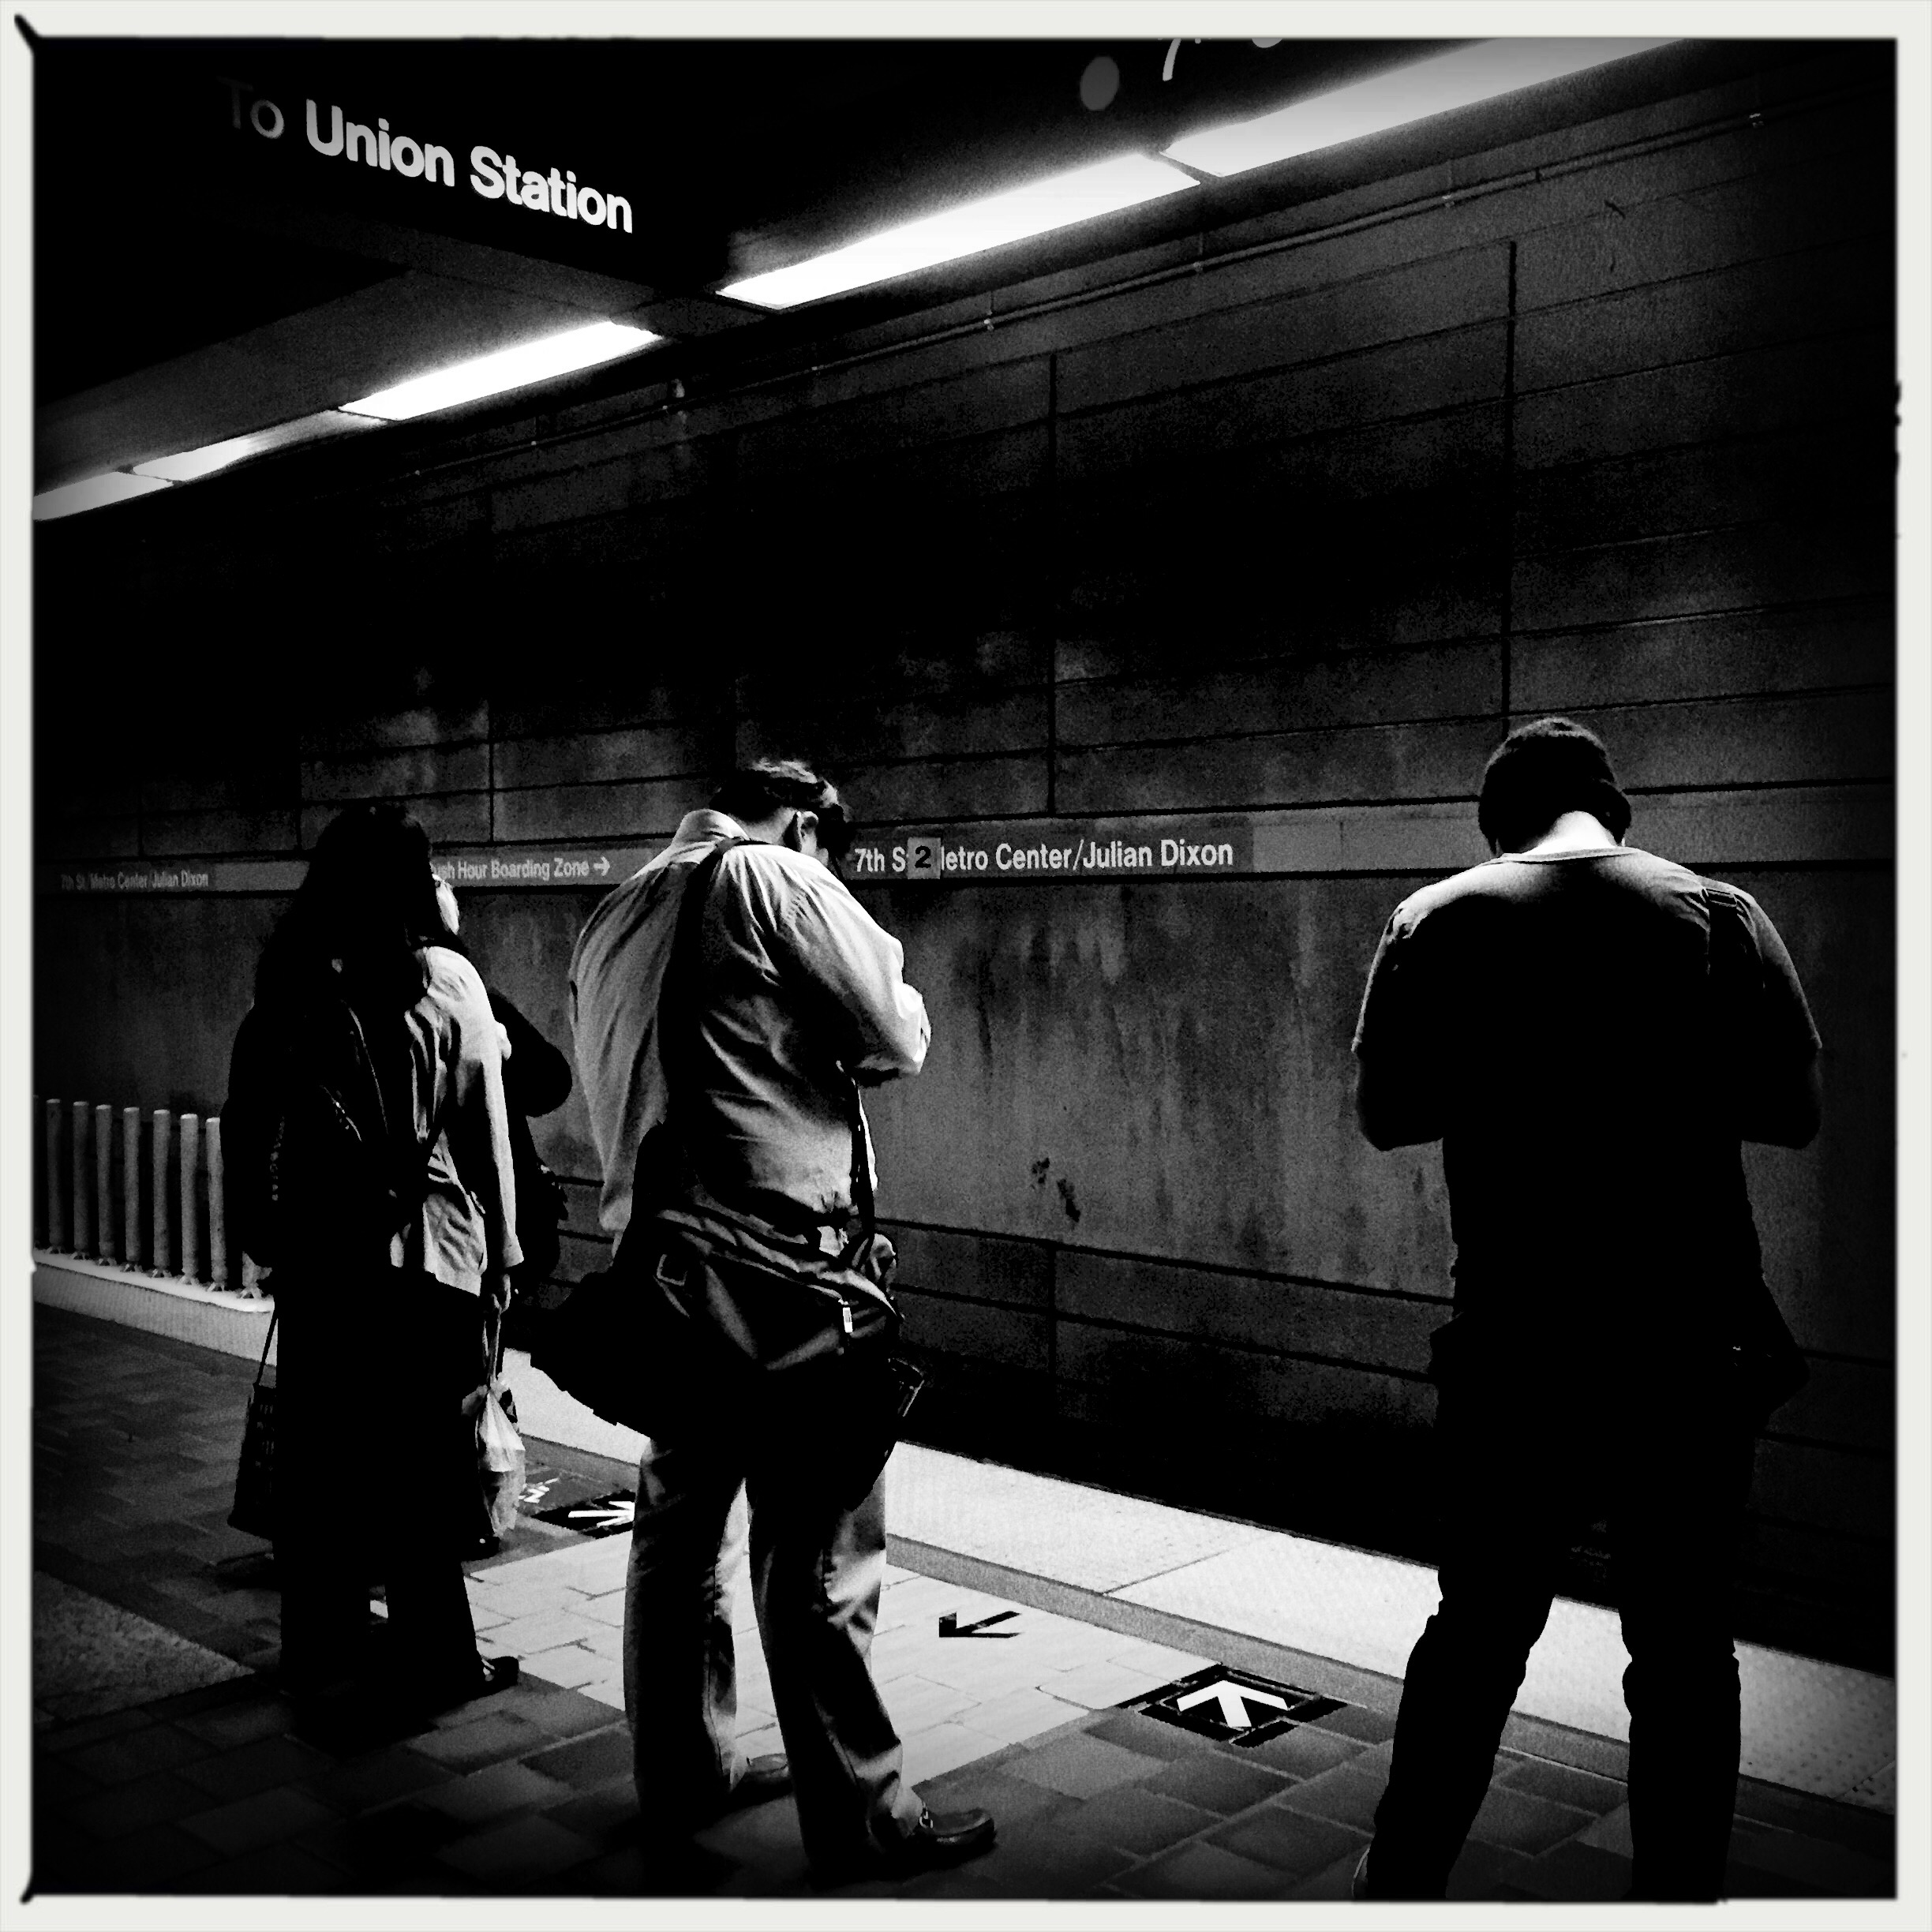 ART OF TRANSIT: Killing time on the subway platform. Photo by Steve Hymon/Metro.